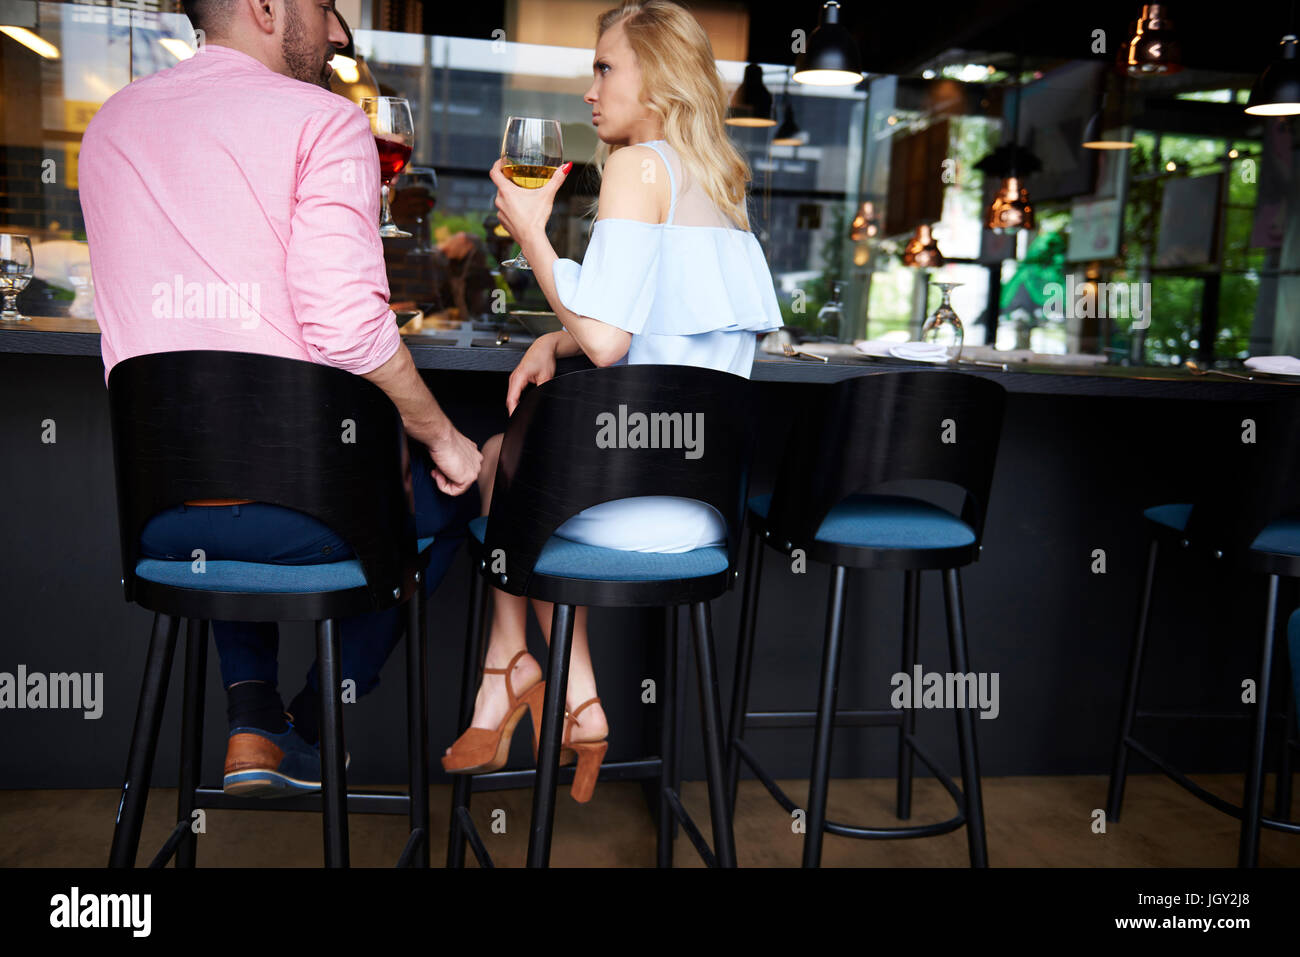 Rear view of man touching angry young woman's knee at bar - Stock Image